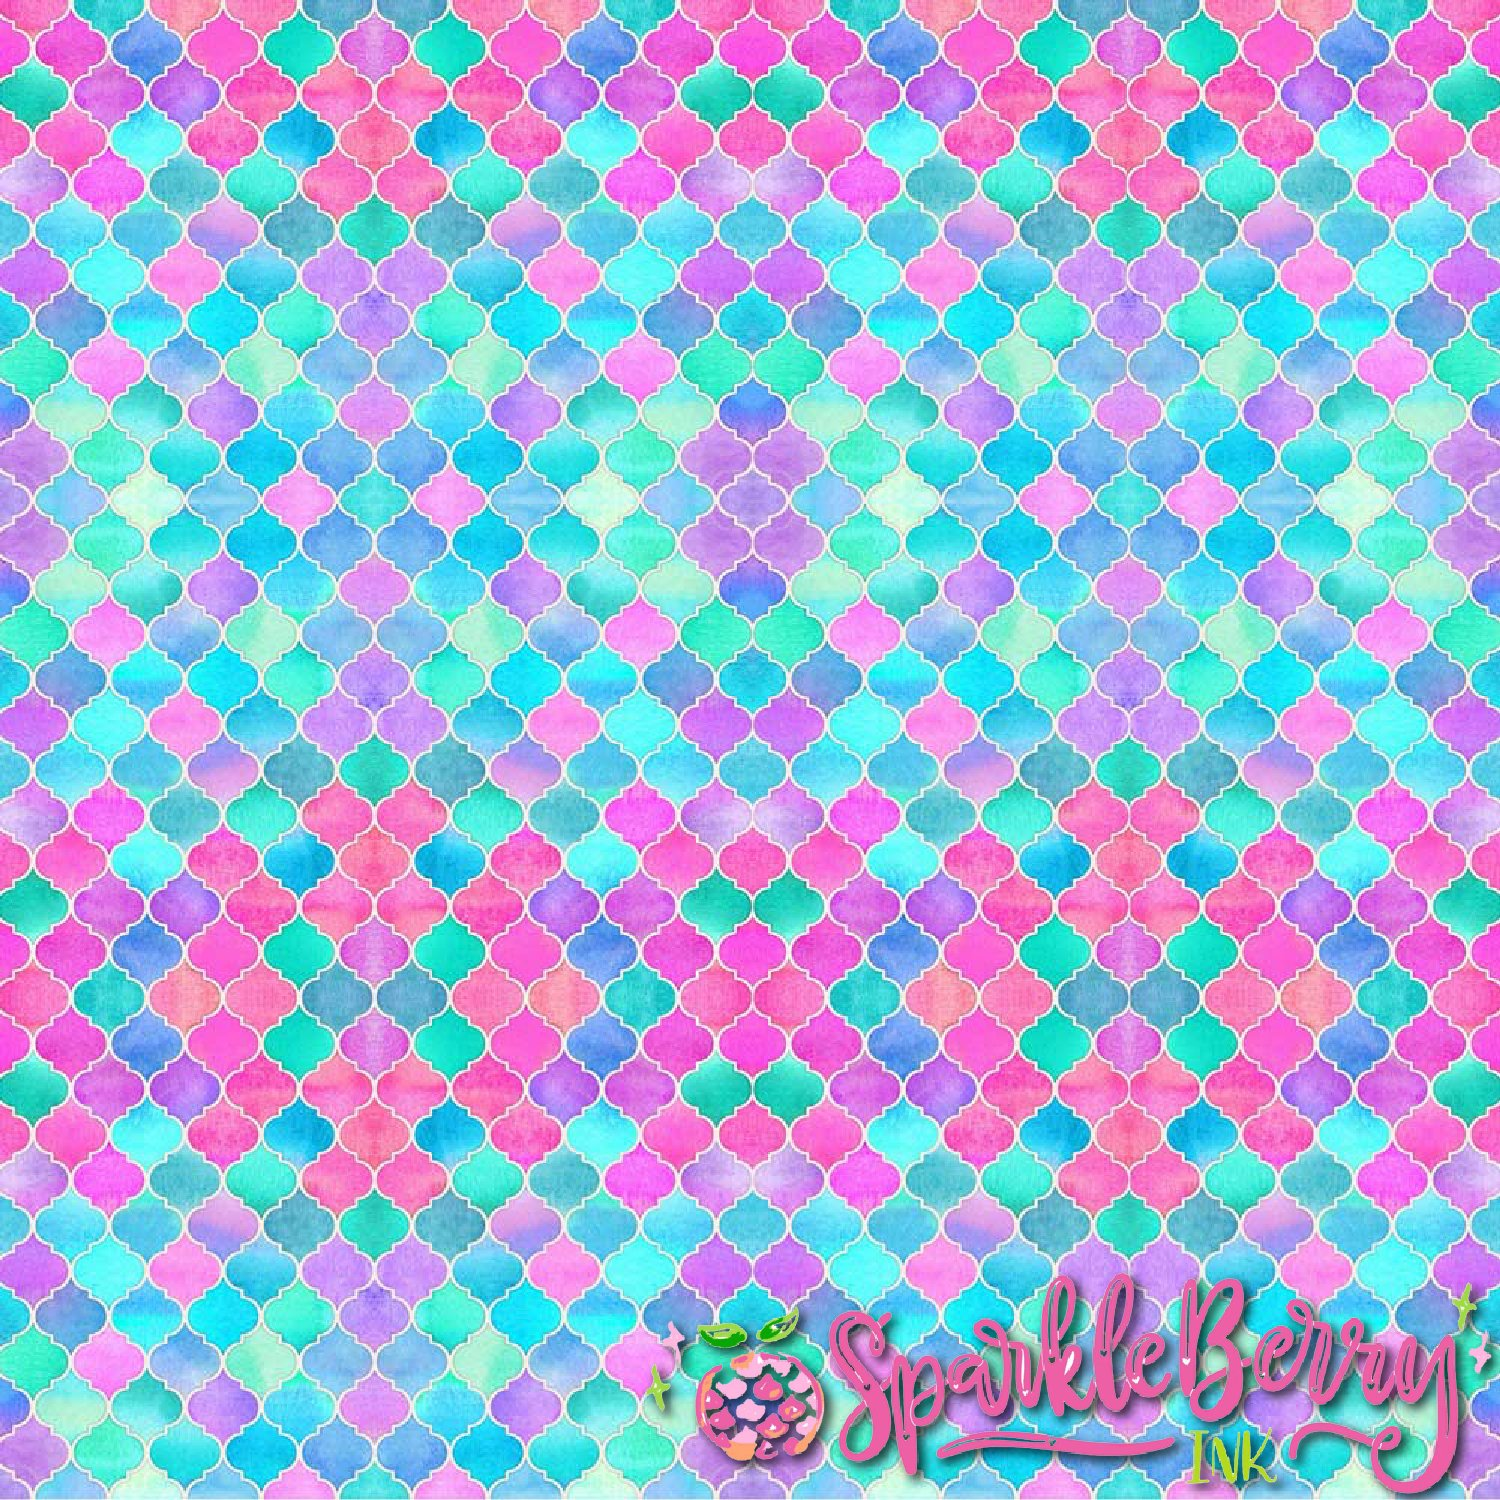 Sparkleberry Ink Siser Patterned HTV 12 by 4 Roll Autism Awareness